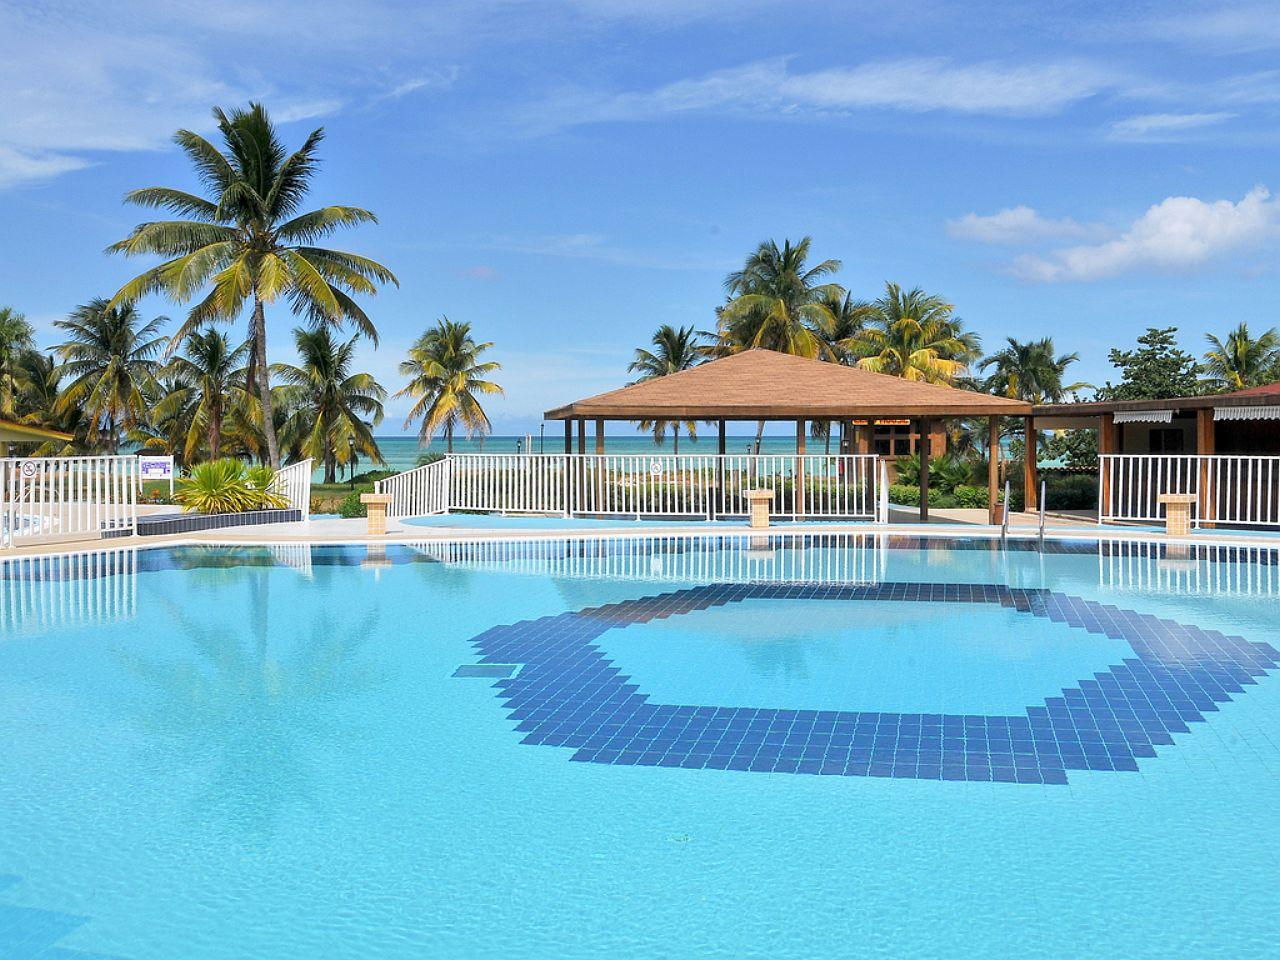 Holidays at Allegro Club Cayo Guillermo Hotel in Cayo Guillermo, Cuba